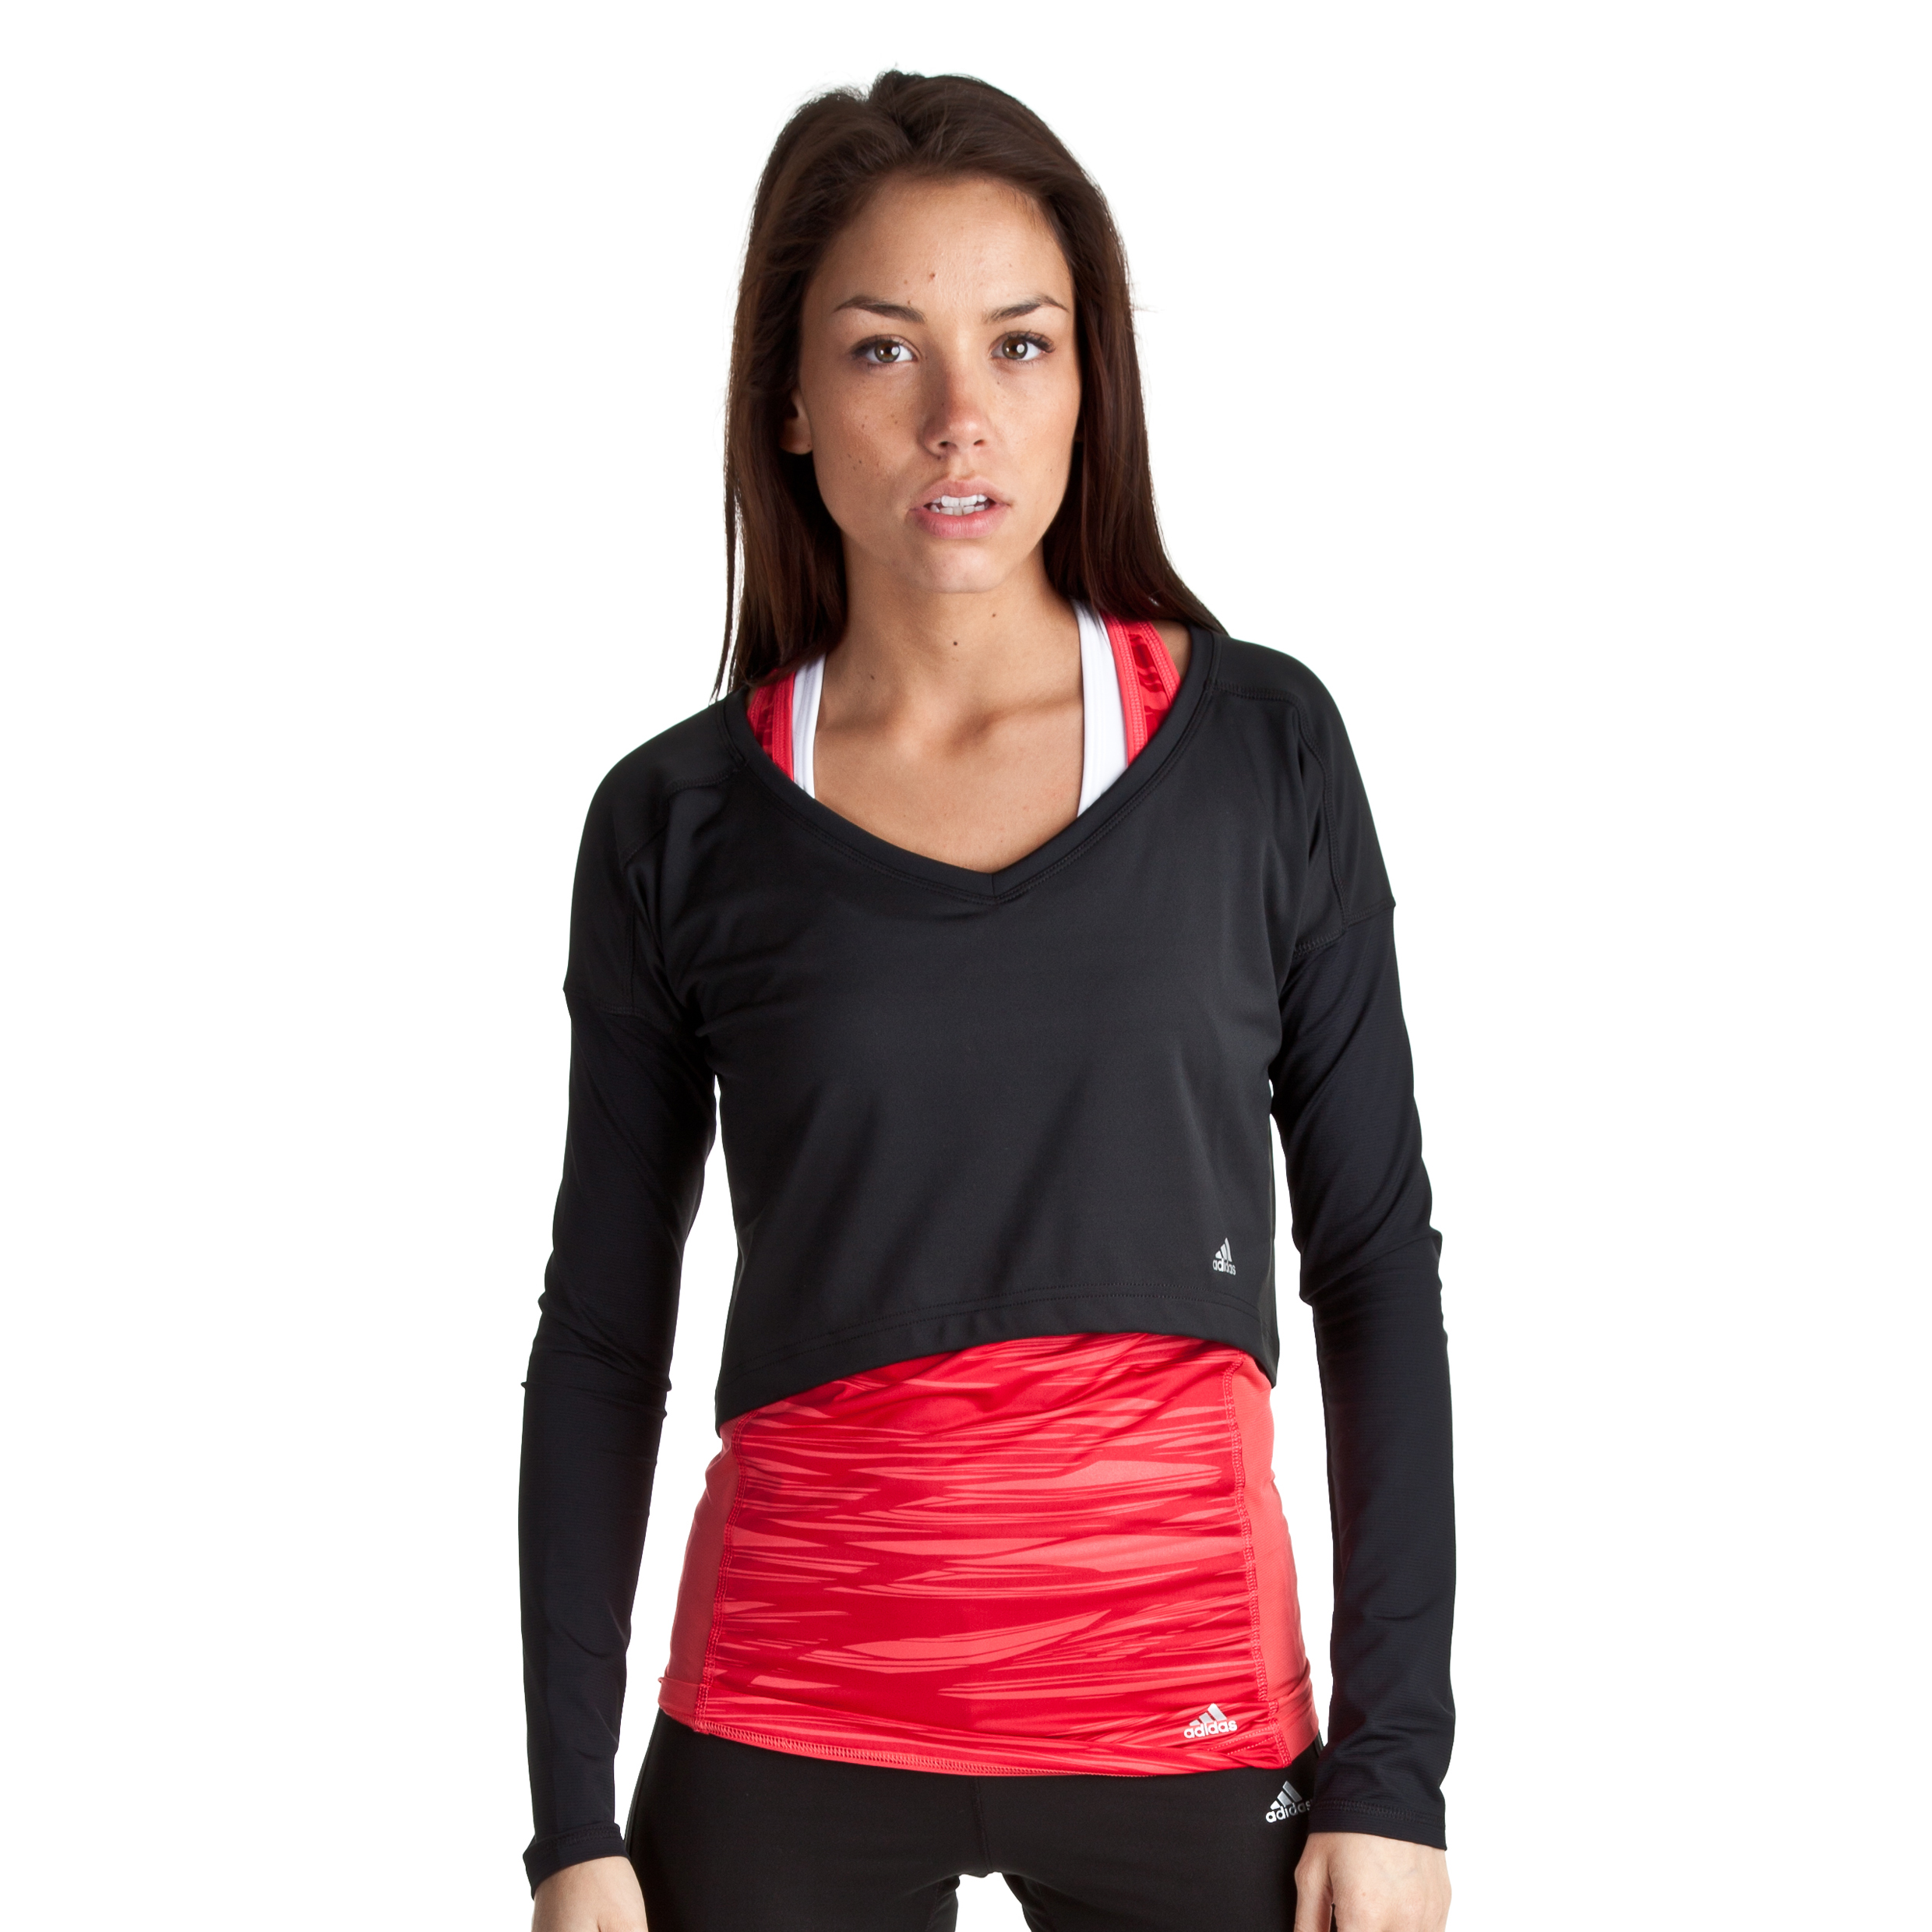 Adidas Studio Power Cover Up Top - Black - Womens